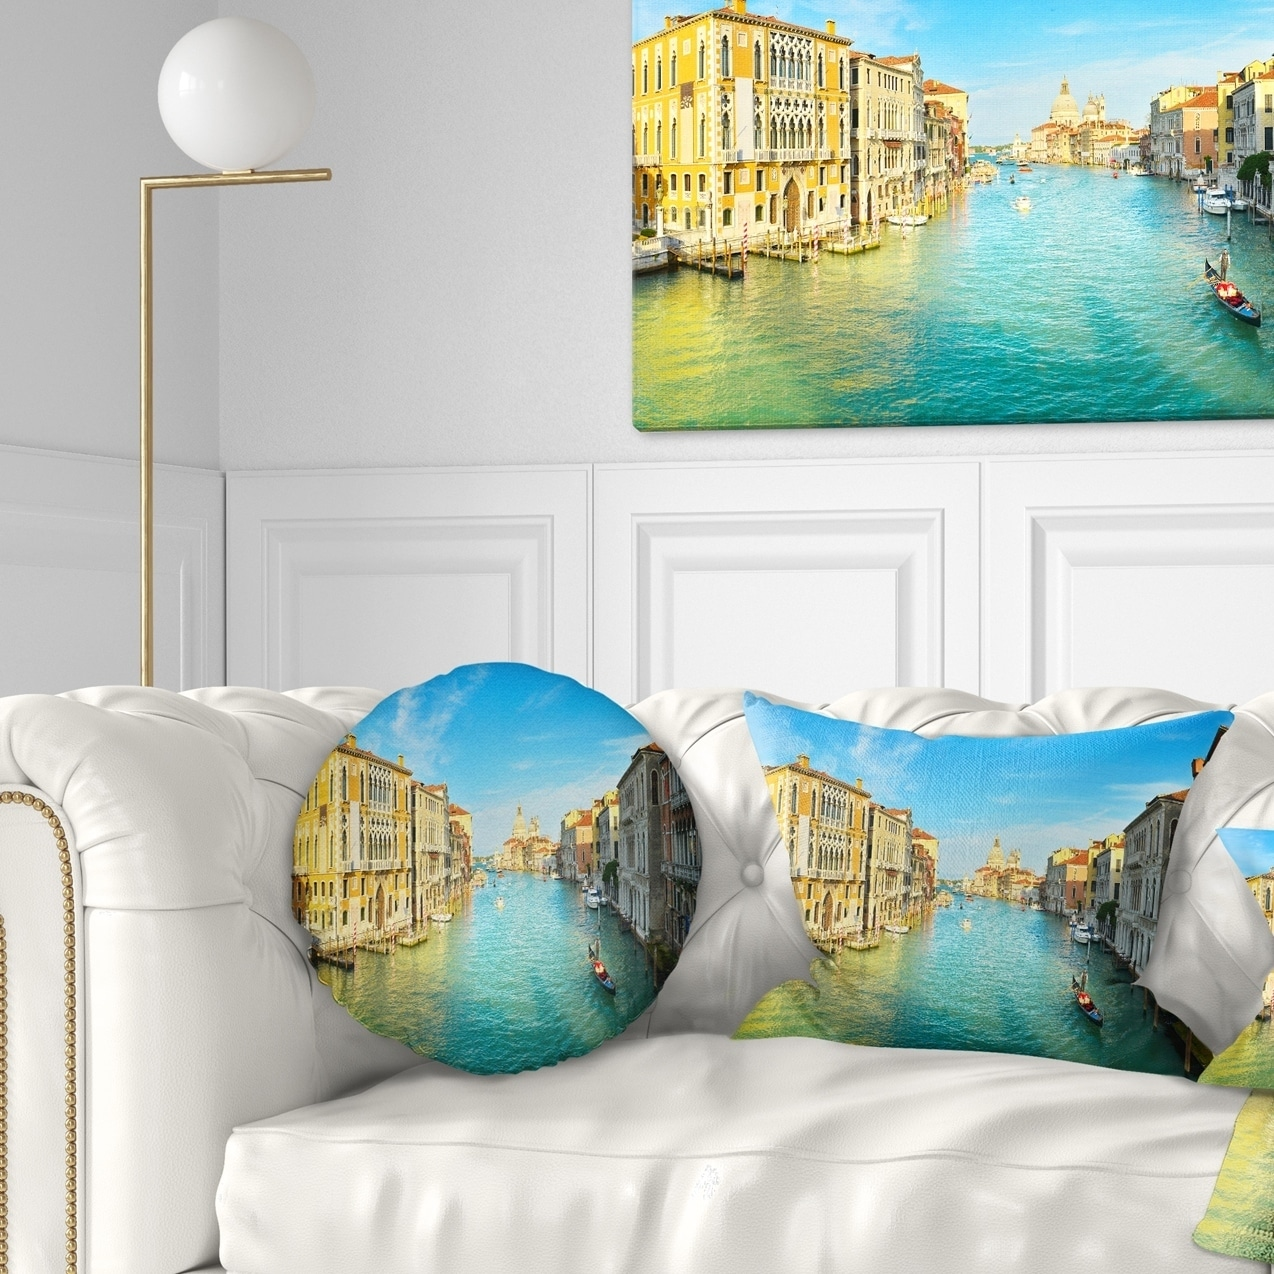 Designart Vibrant Evening Venice Italy Cityscape Throw Pillow On Sale Overstock 20890721